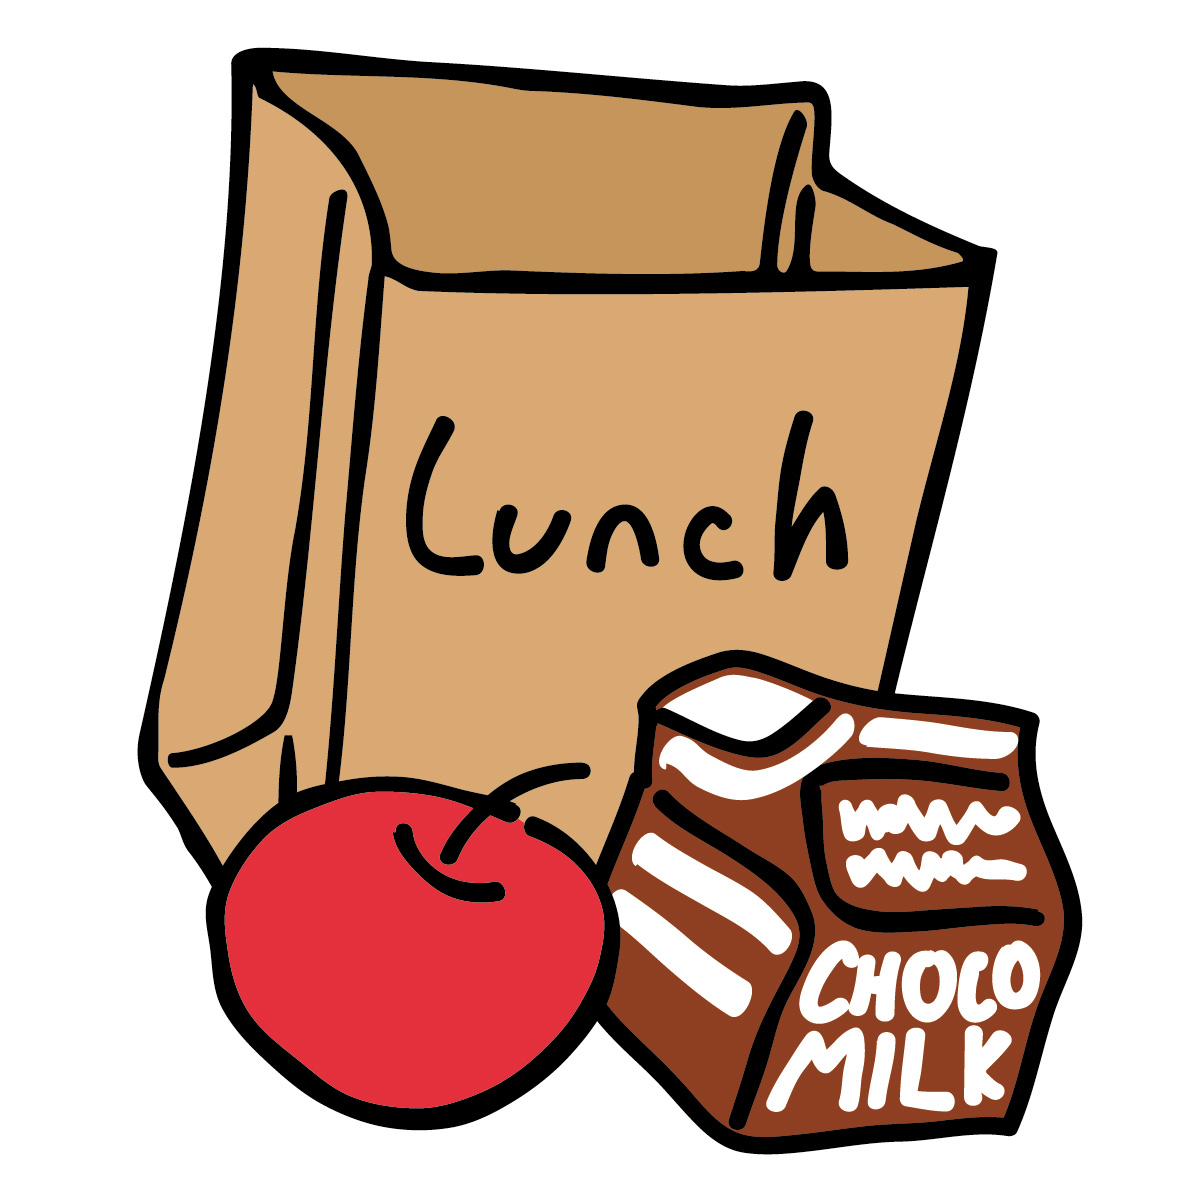 Lunch time clip art free clipart images 2